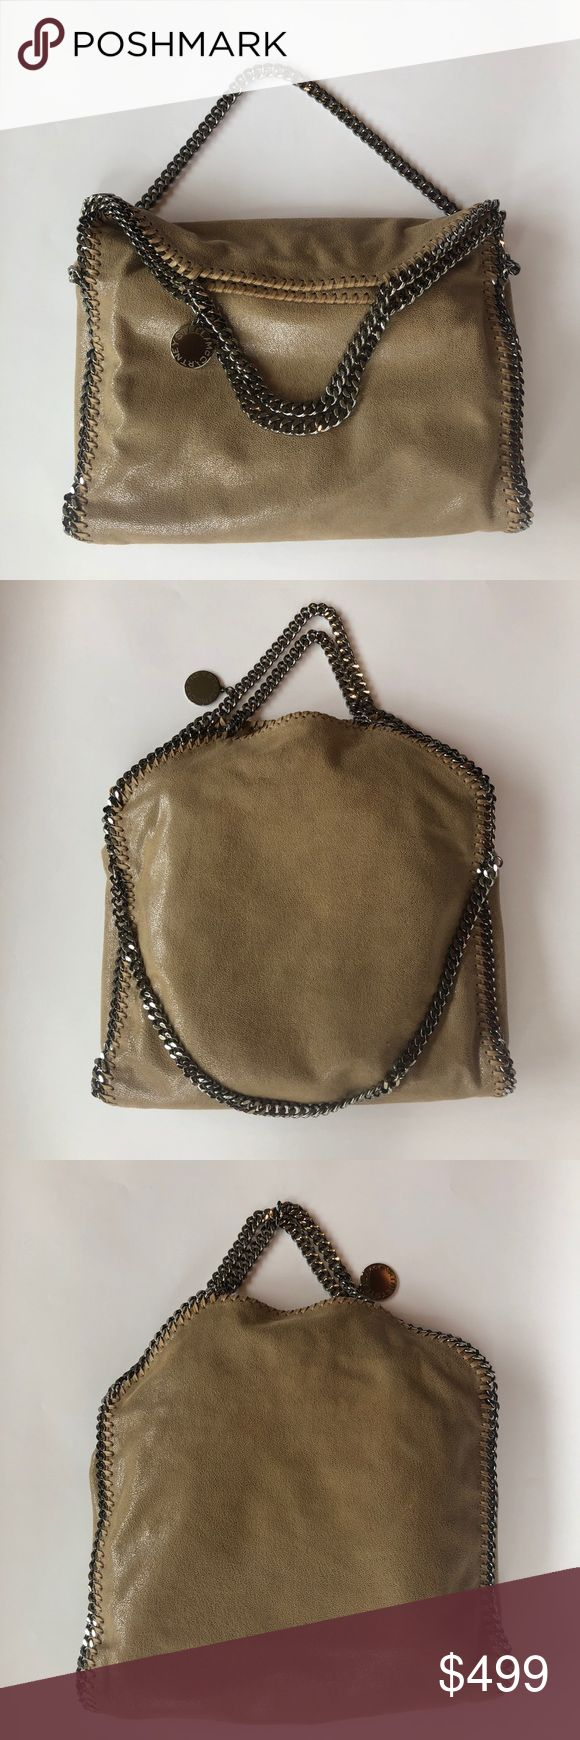 """Stella McCartney Medium Falabella Tan foldover bag Perfect condition, has sat unused in my closet since purchasing from Neiman Marcus in 2016. The fabric is """"Shaggy Deer"""" in a versatile taupe/tan color.   Comes with Stella McCartney dust bag and I still have the tag covering too. The inside has one zipper pocket and is lined with logo fabric. Please let me know if you have questions!   Dimensions:  14""""H x 14.5""""W x 3.5""""D Stella McCartney Bags Totes"""